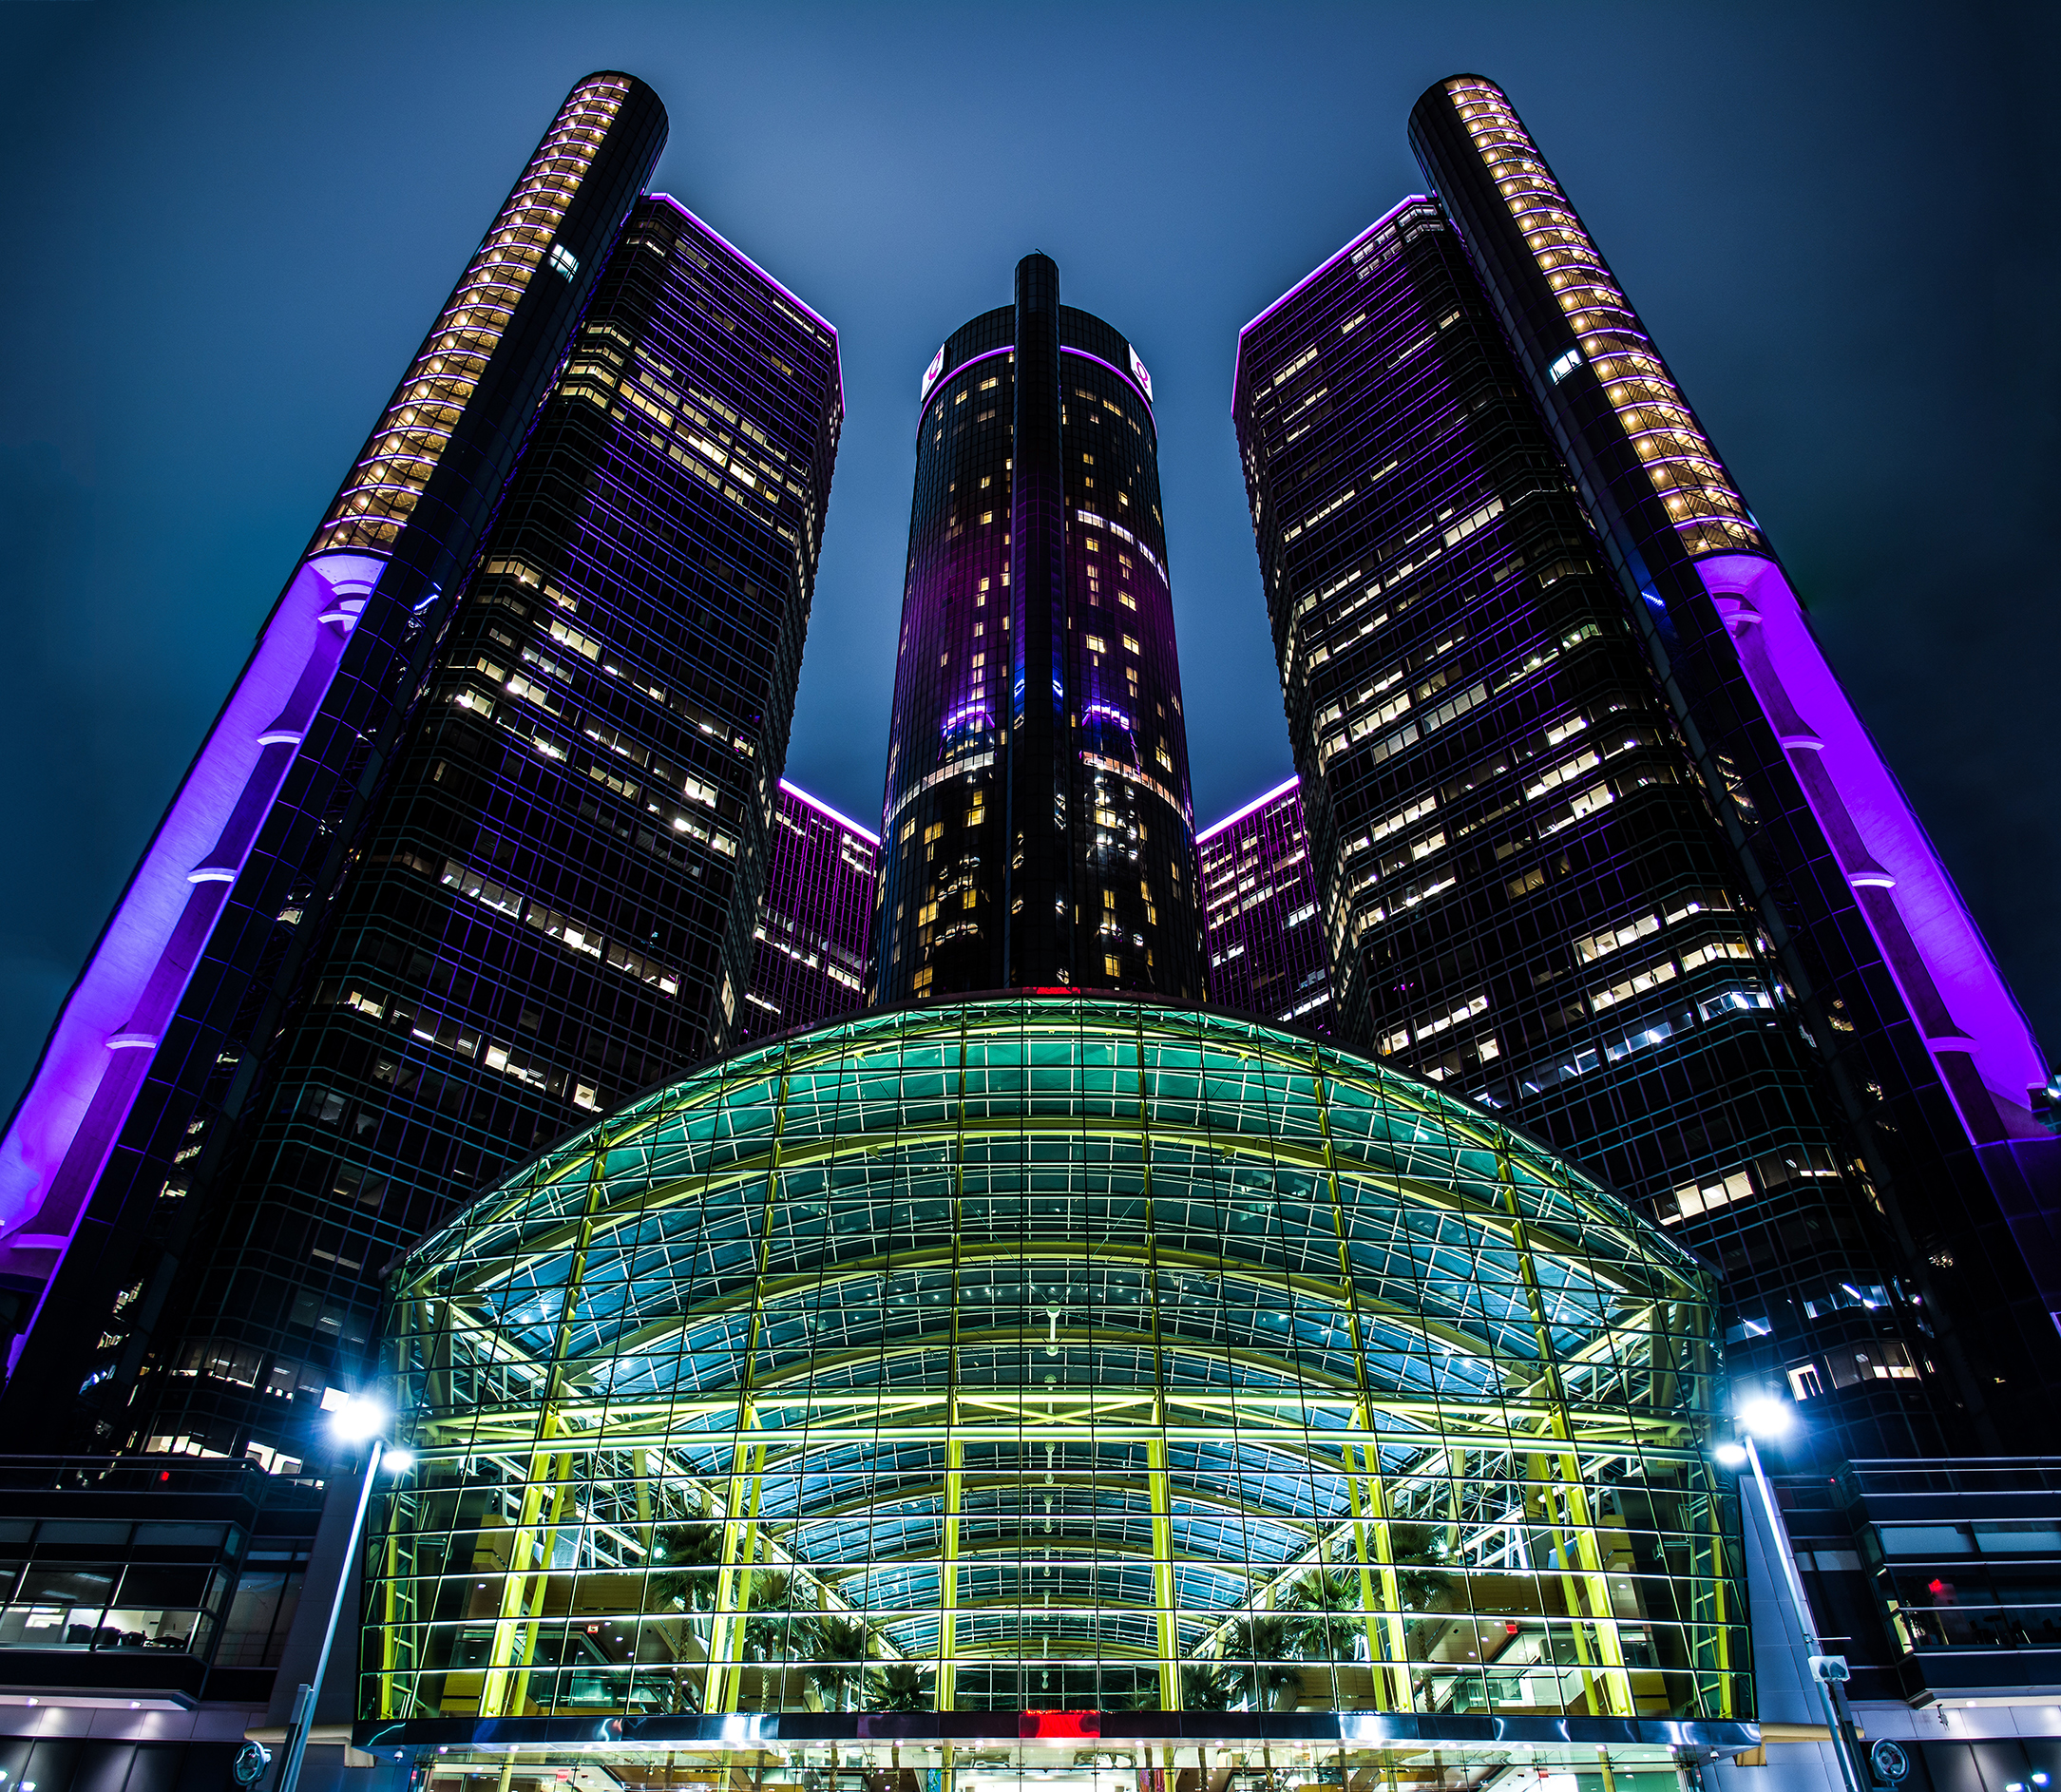 New Restaurant Planned For Top Of Rencen